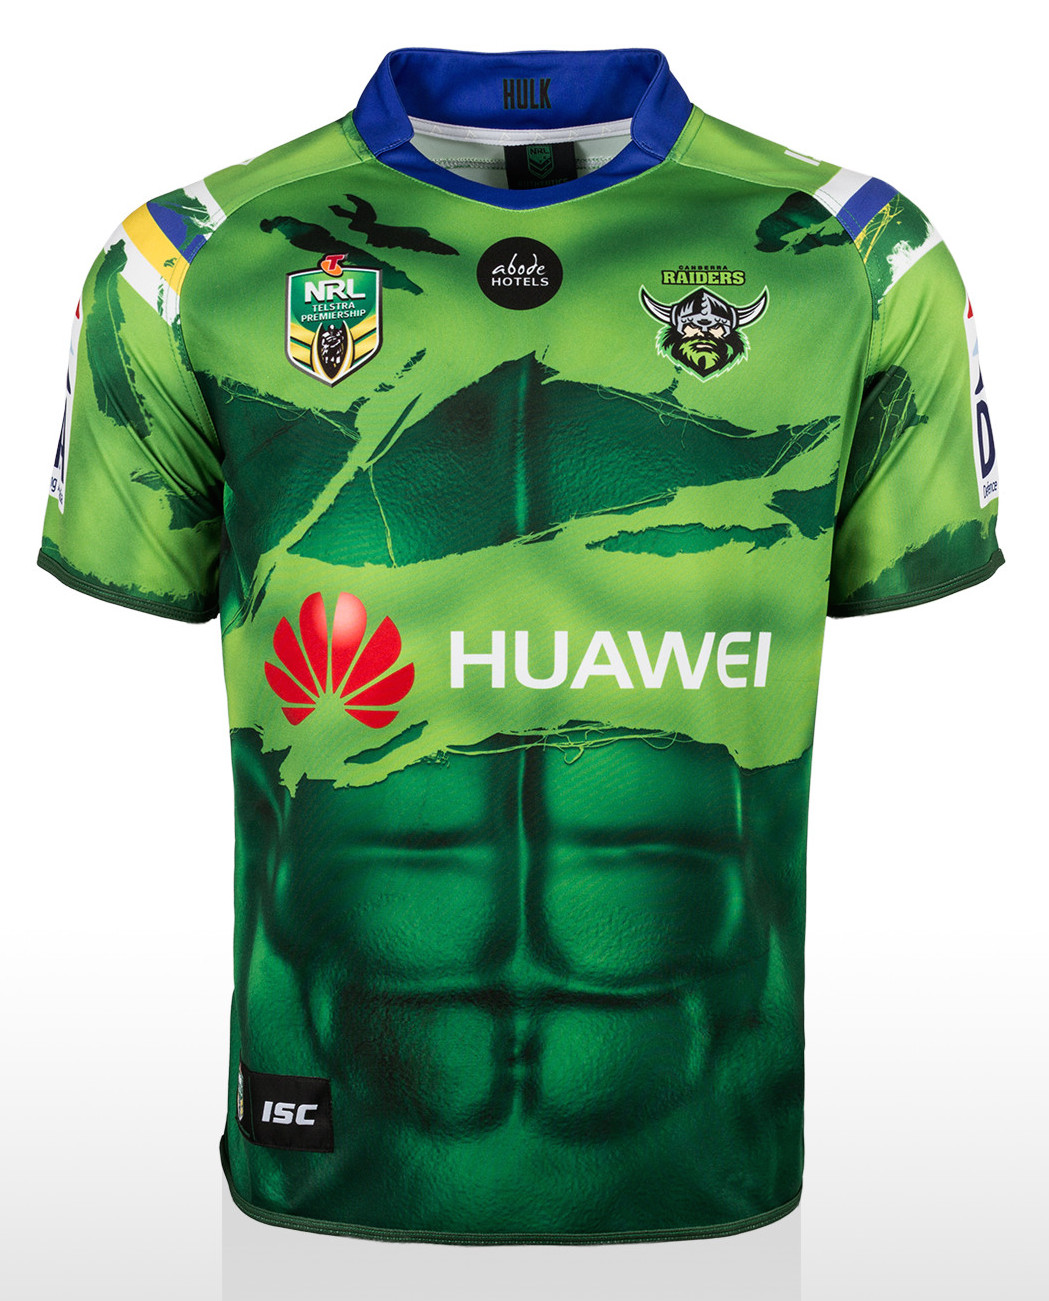 Superman hoodies for couples images amp pictures becuo - Canberra Raiders Hulk Shirt